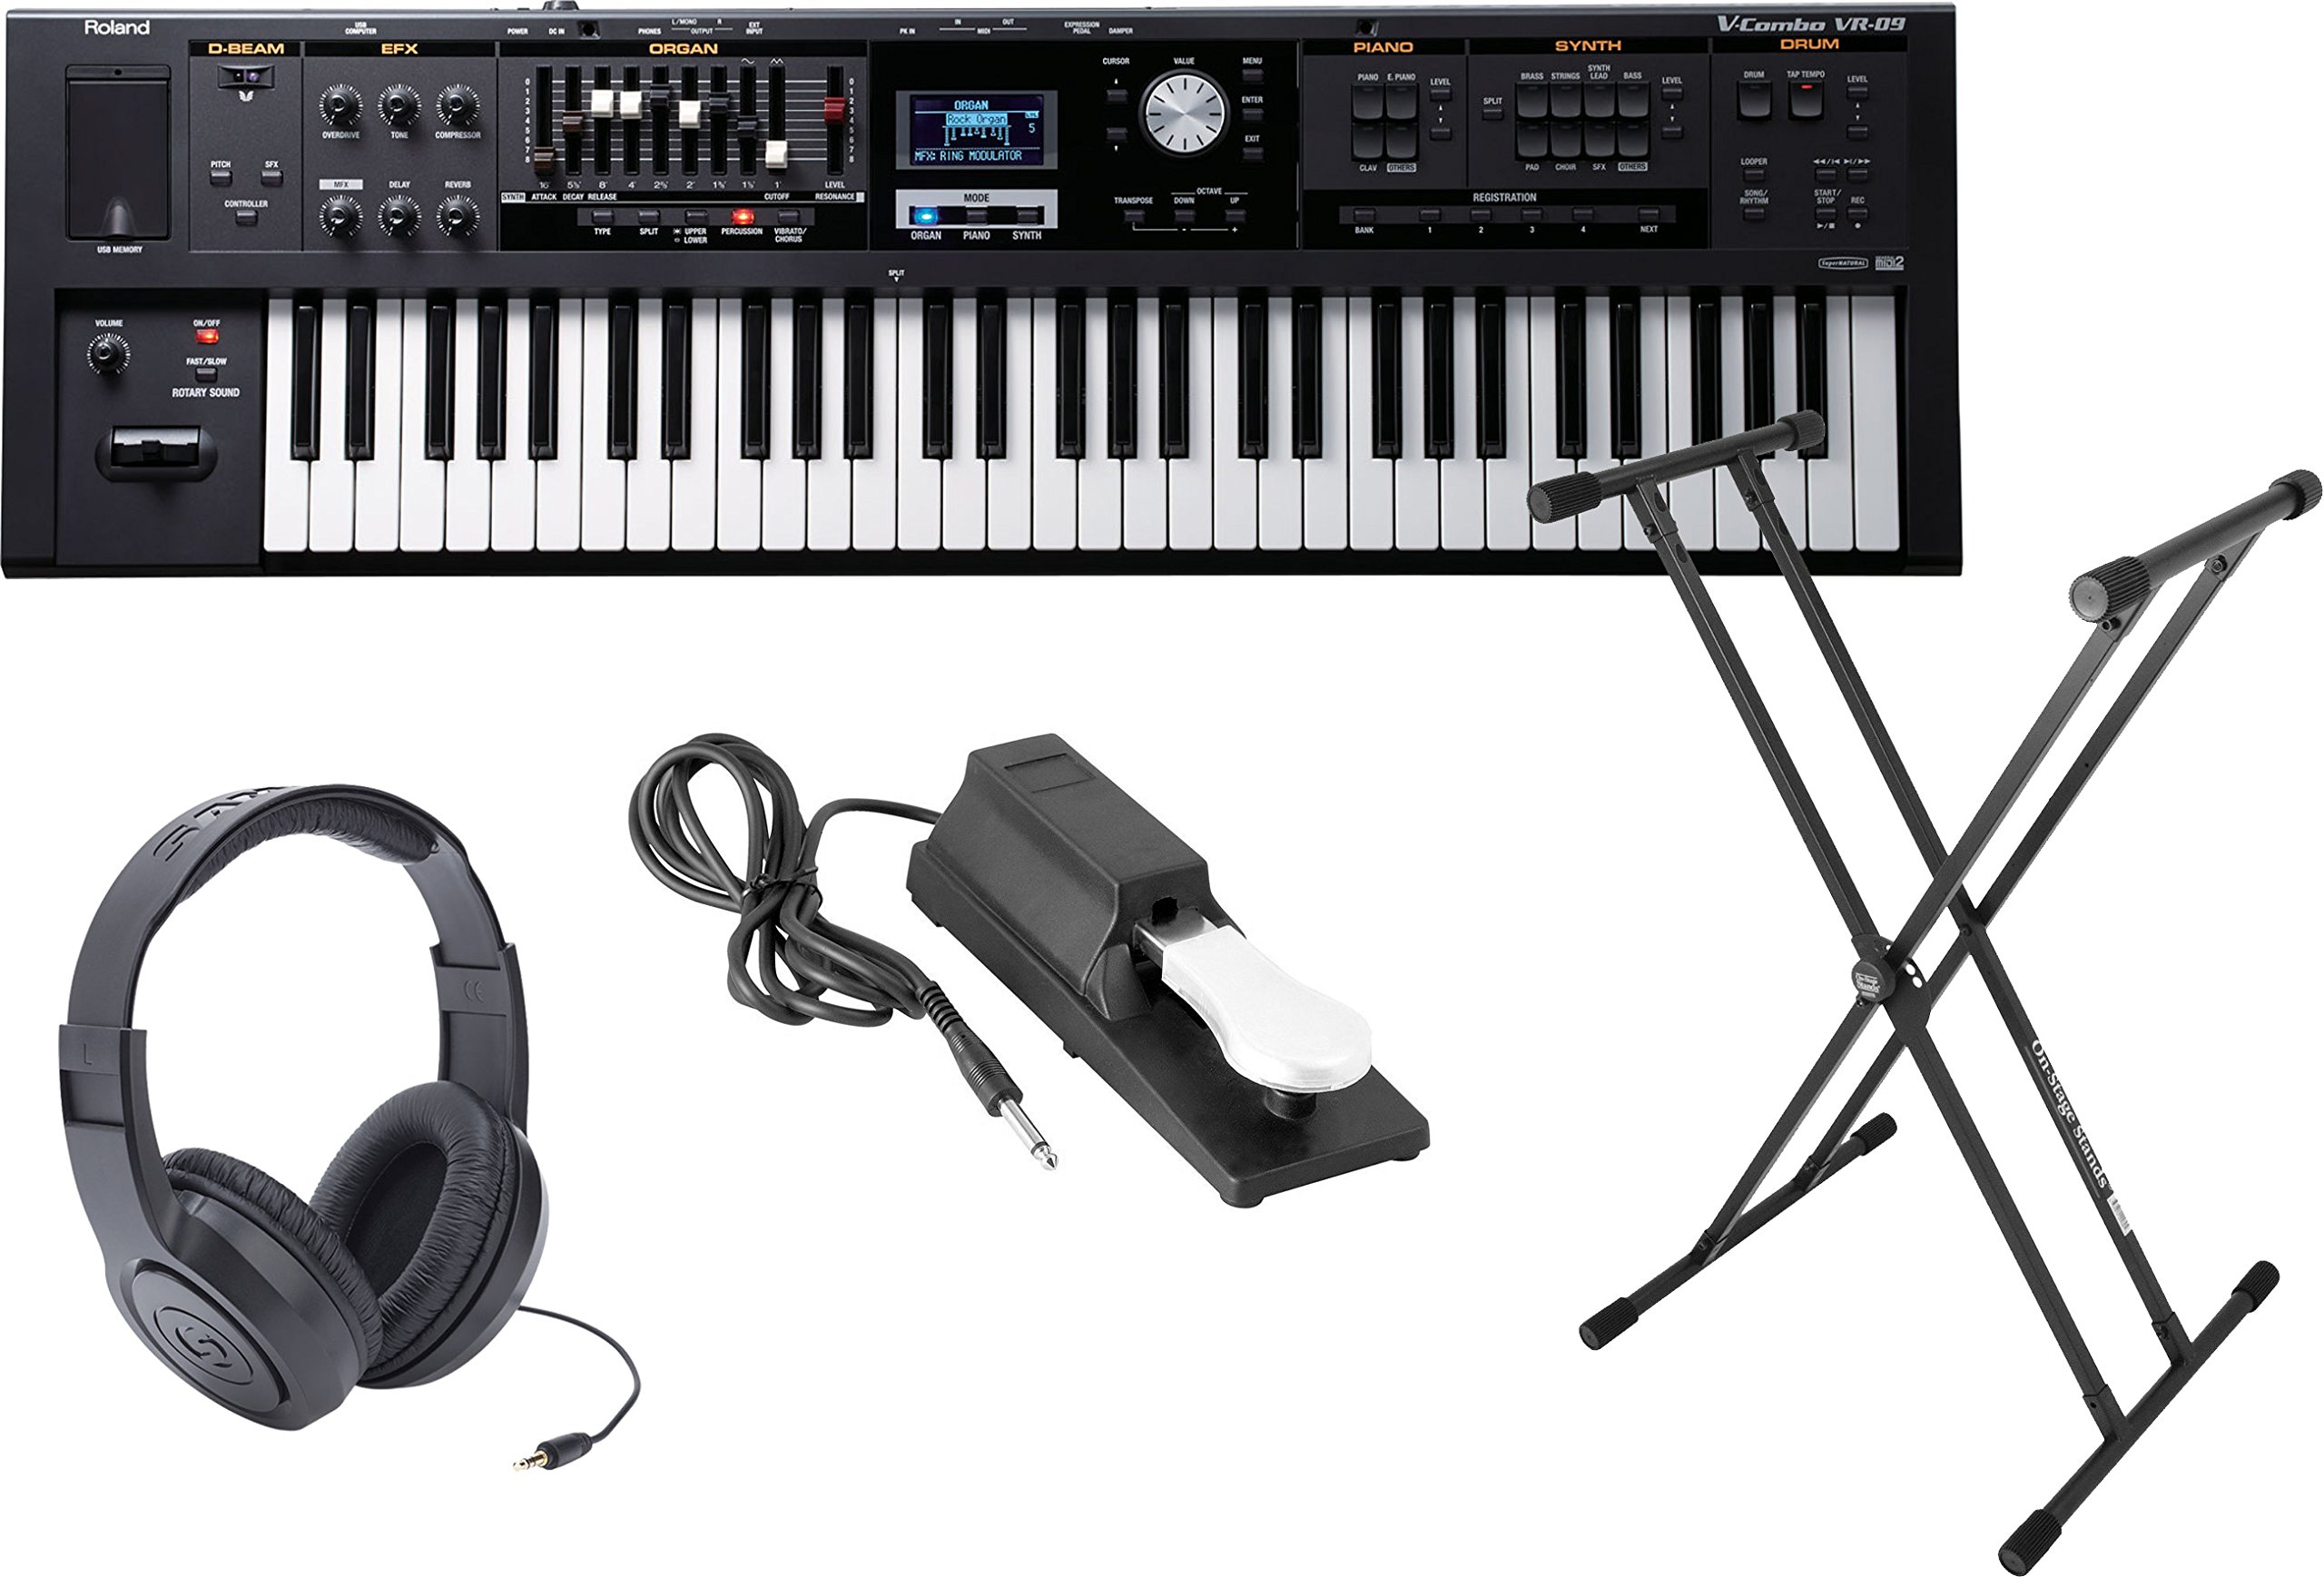 Roland VR-09 'V-Combo' 61-Note Live Performance Keyboard w/Sustain Pedal, Double X Stand, and Headphones by Roland